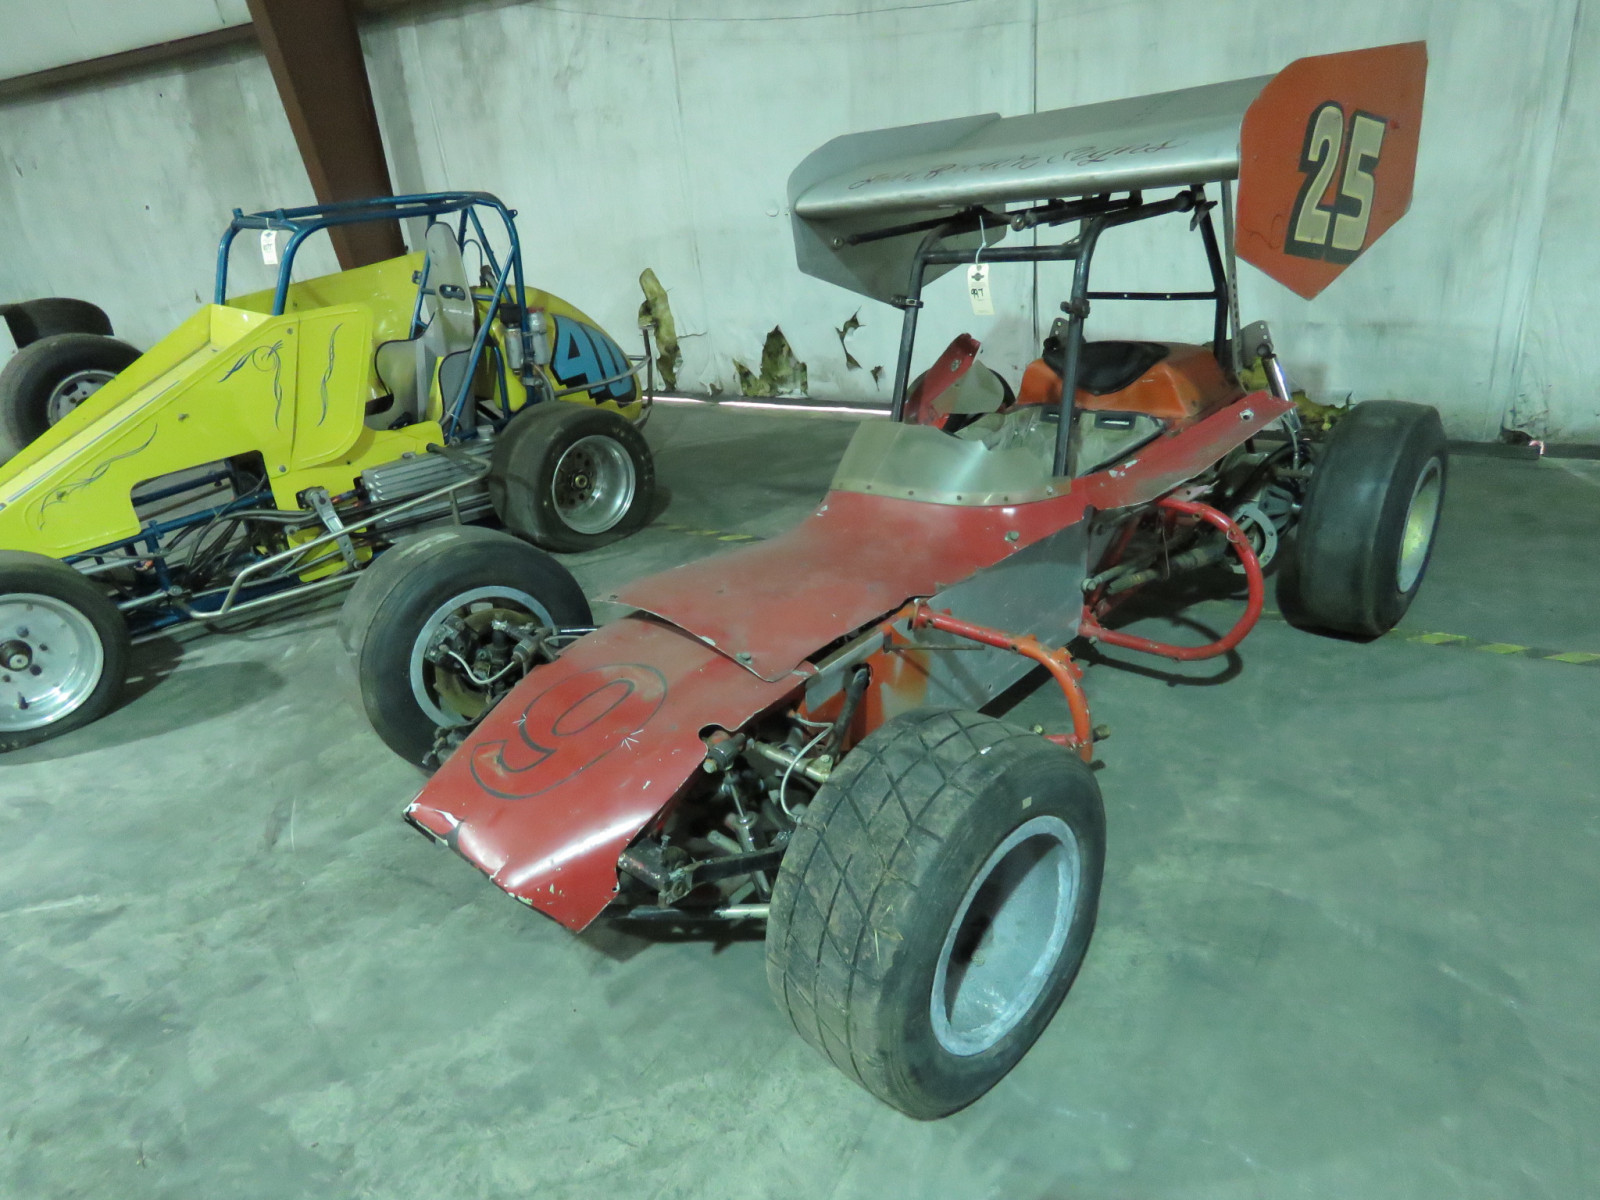 Vintage Edmunds Type Roadster Midget Race Car - Image 1